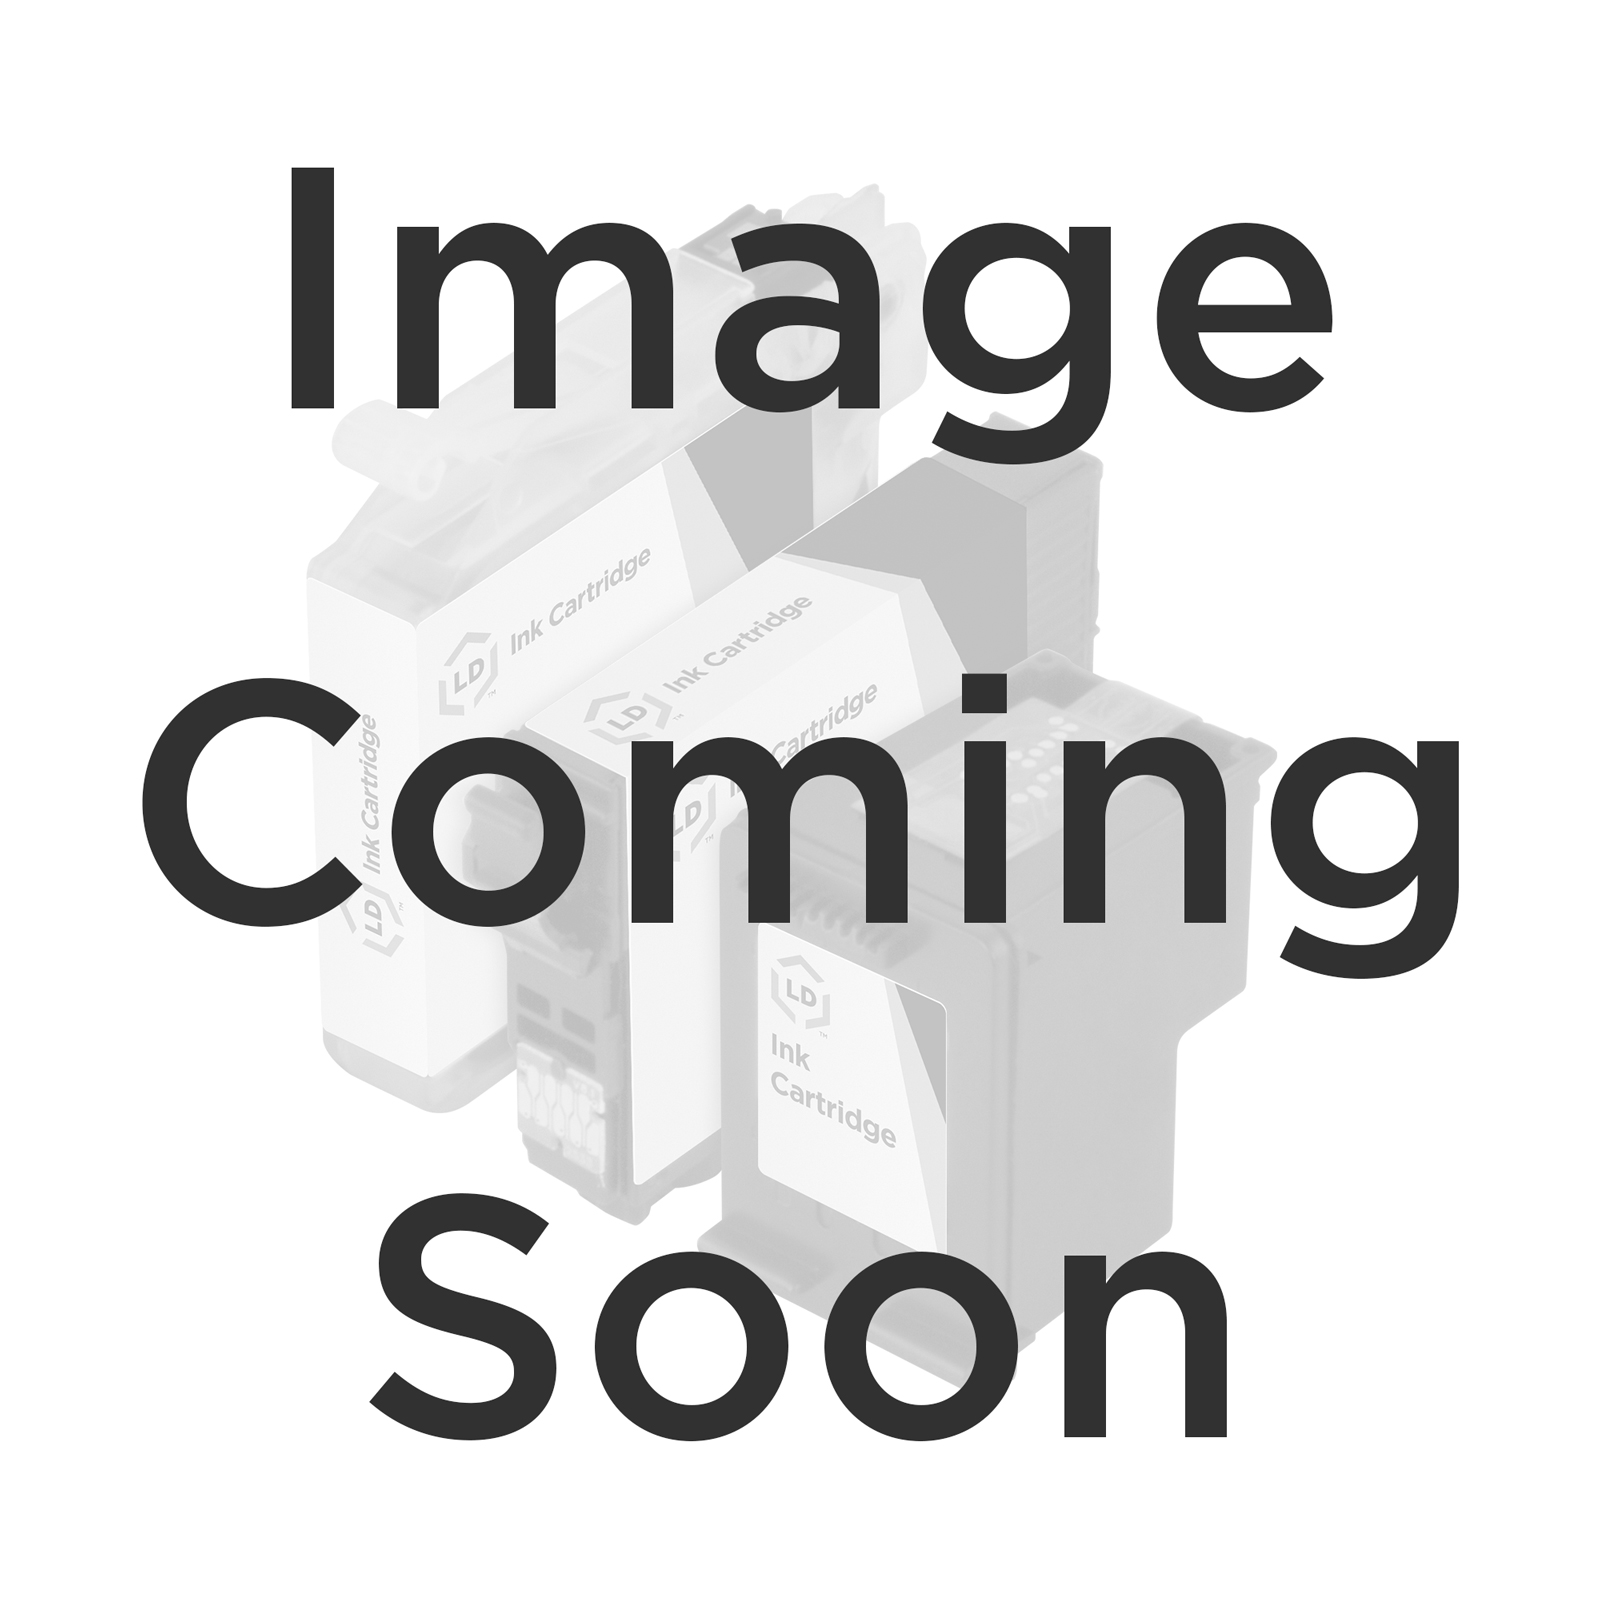 Post-it Post-it Durable Index Tabs - 100 per pack Write-on